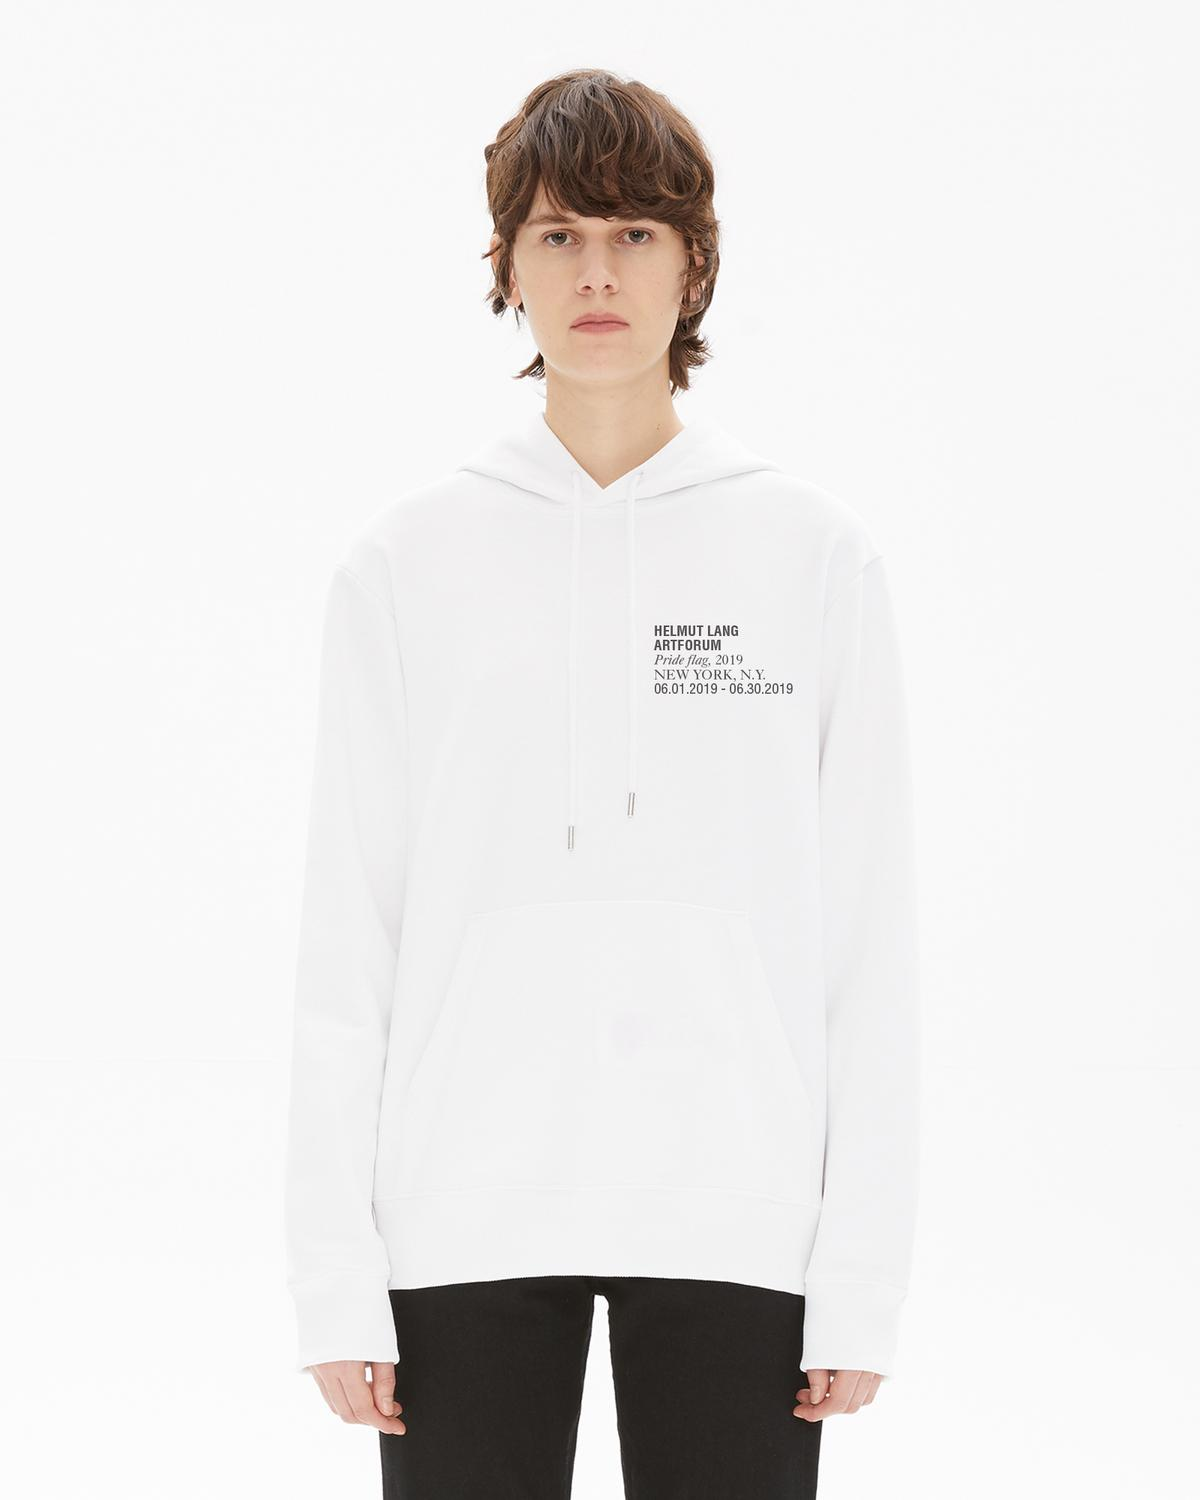 Limited Edition Artforum Sweatshirt